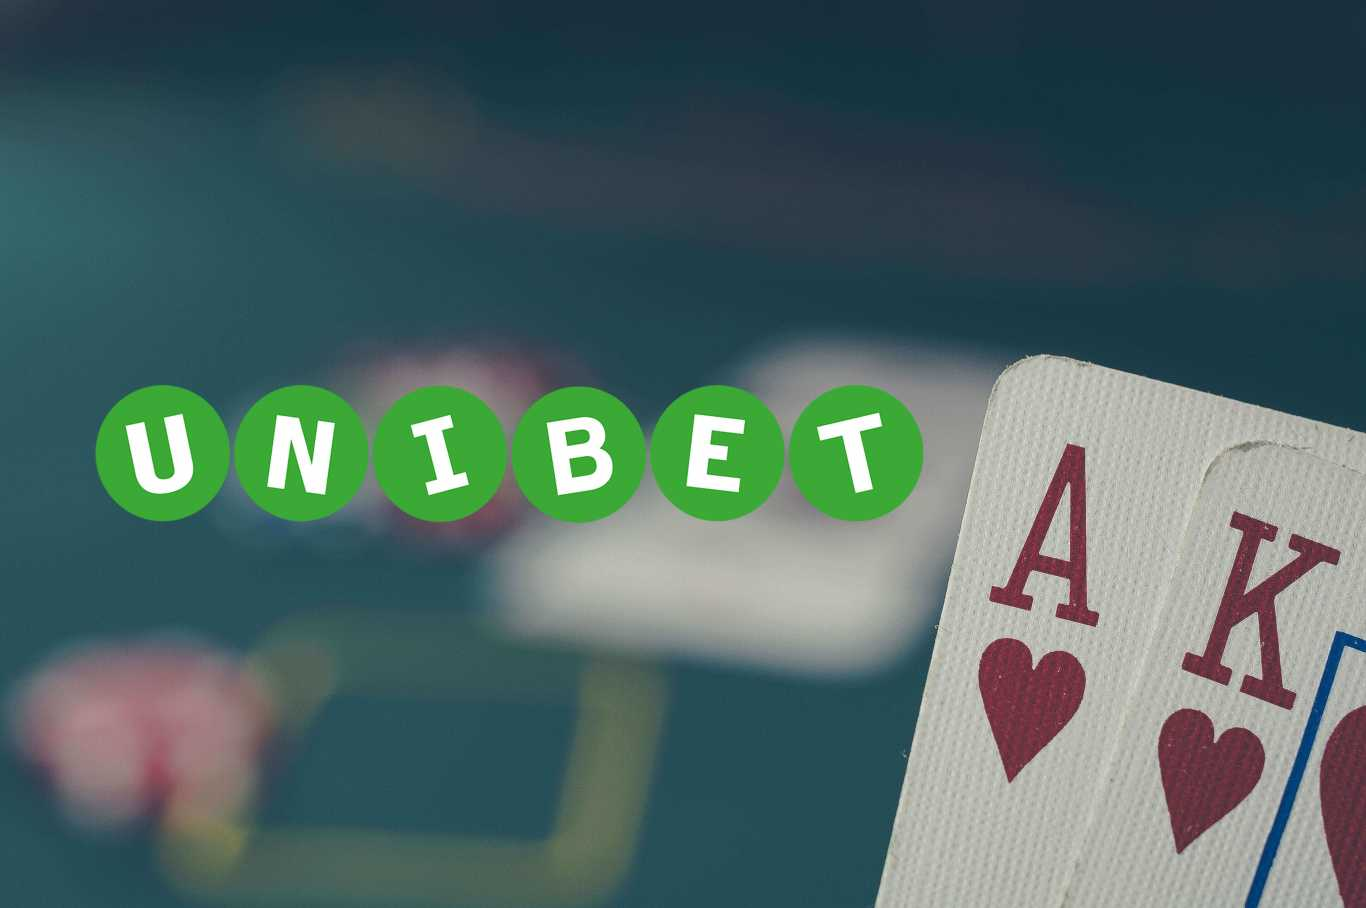 telecharger unibet android